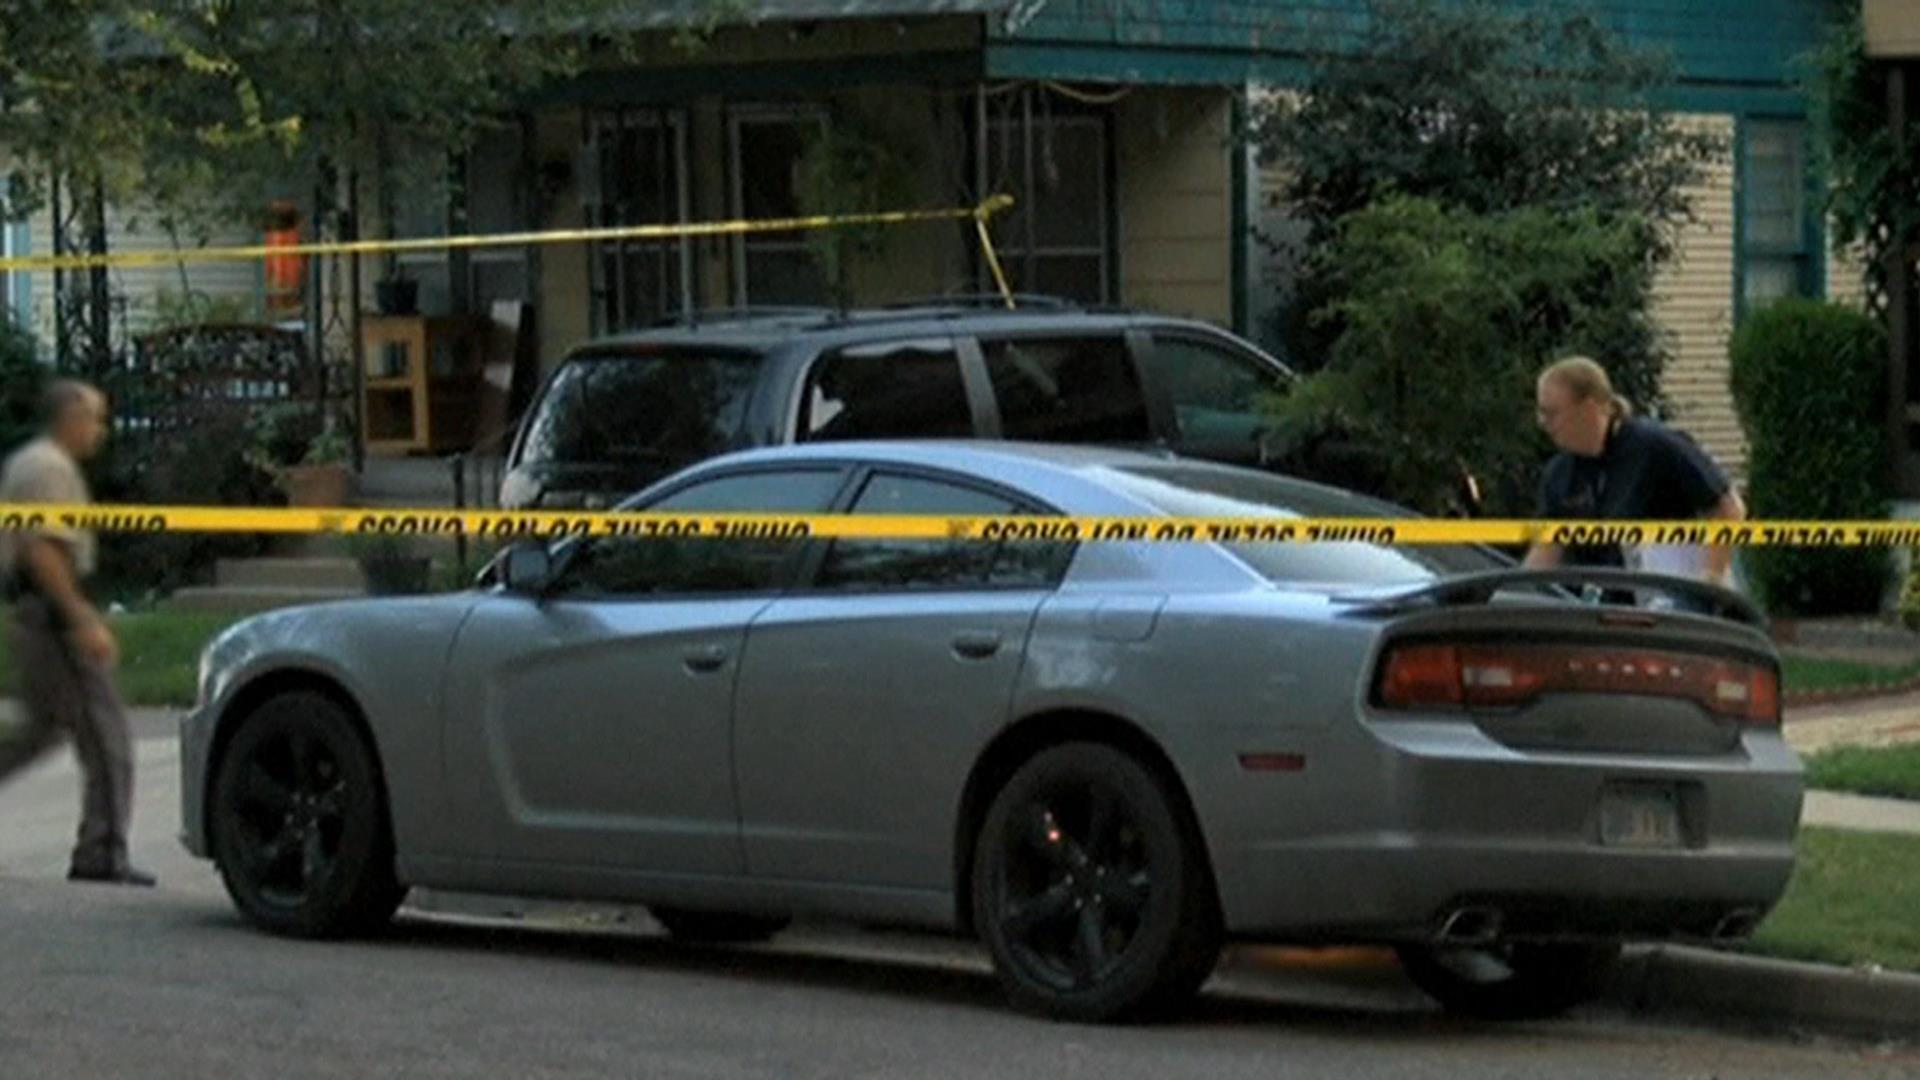 Baby Dies After Being Left in Hot Car in Kansas